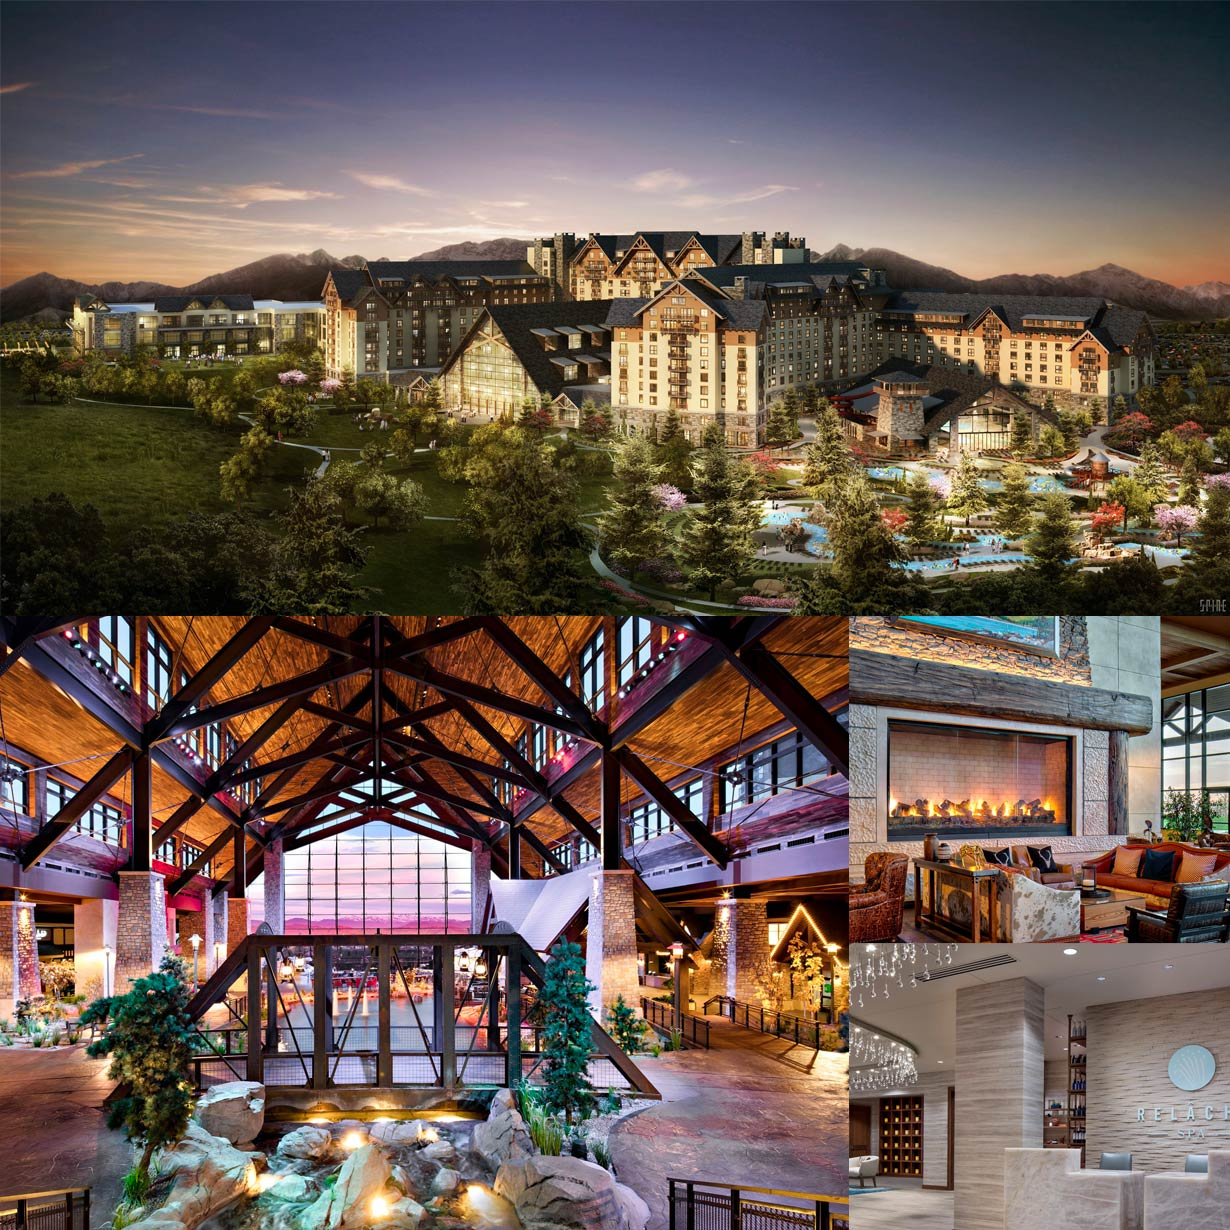 Gaylord Rockies Resort & Convention Center